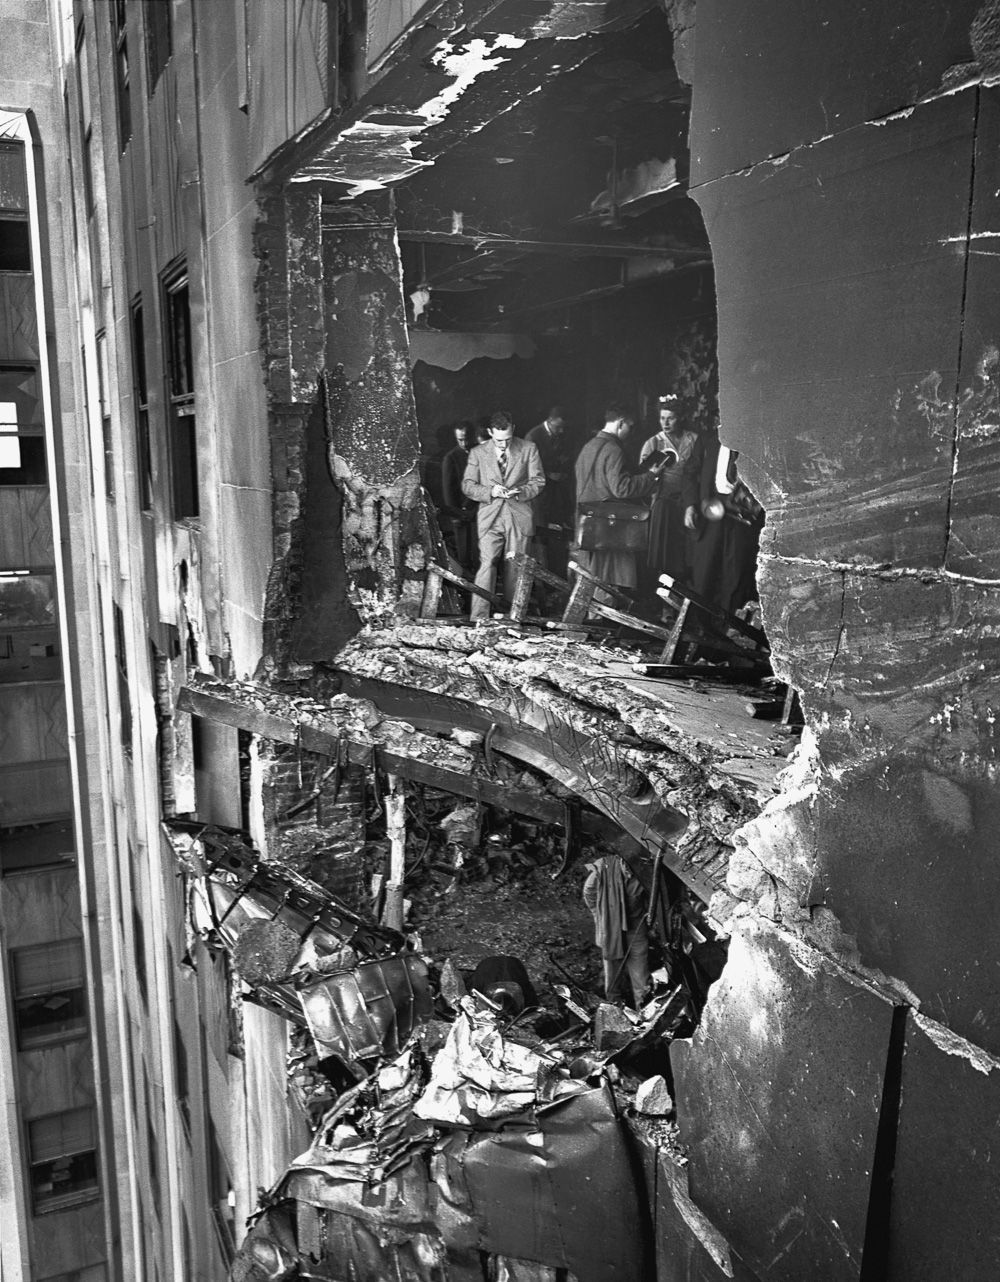 July 28, 1945: A B-25 Mitchell Bomber Hit The Empire State Building